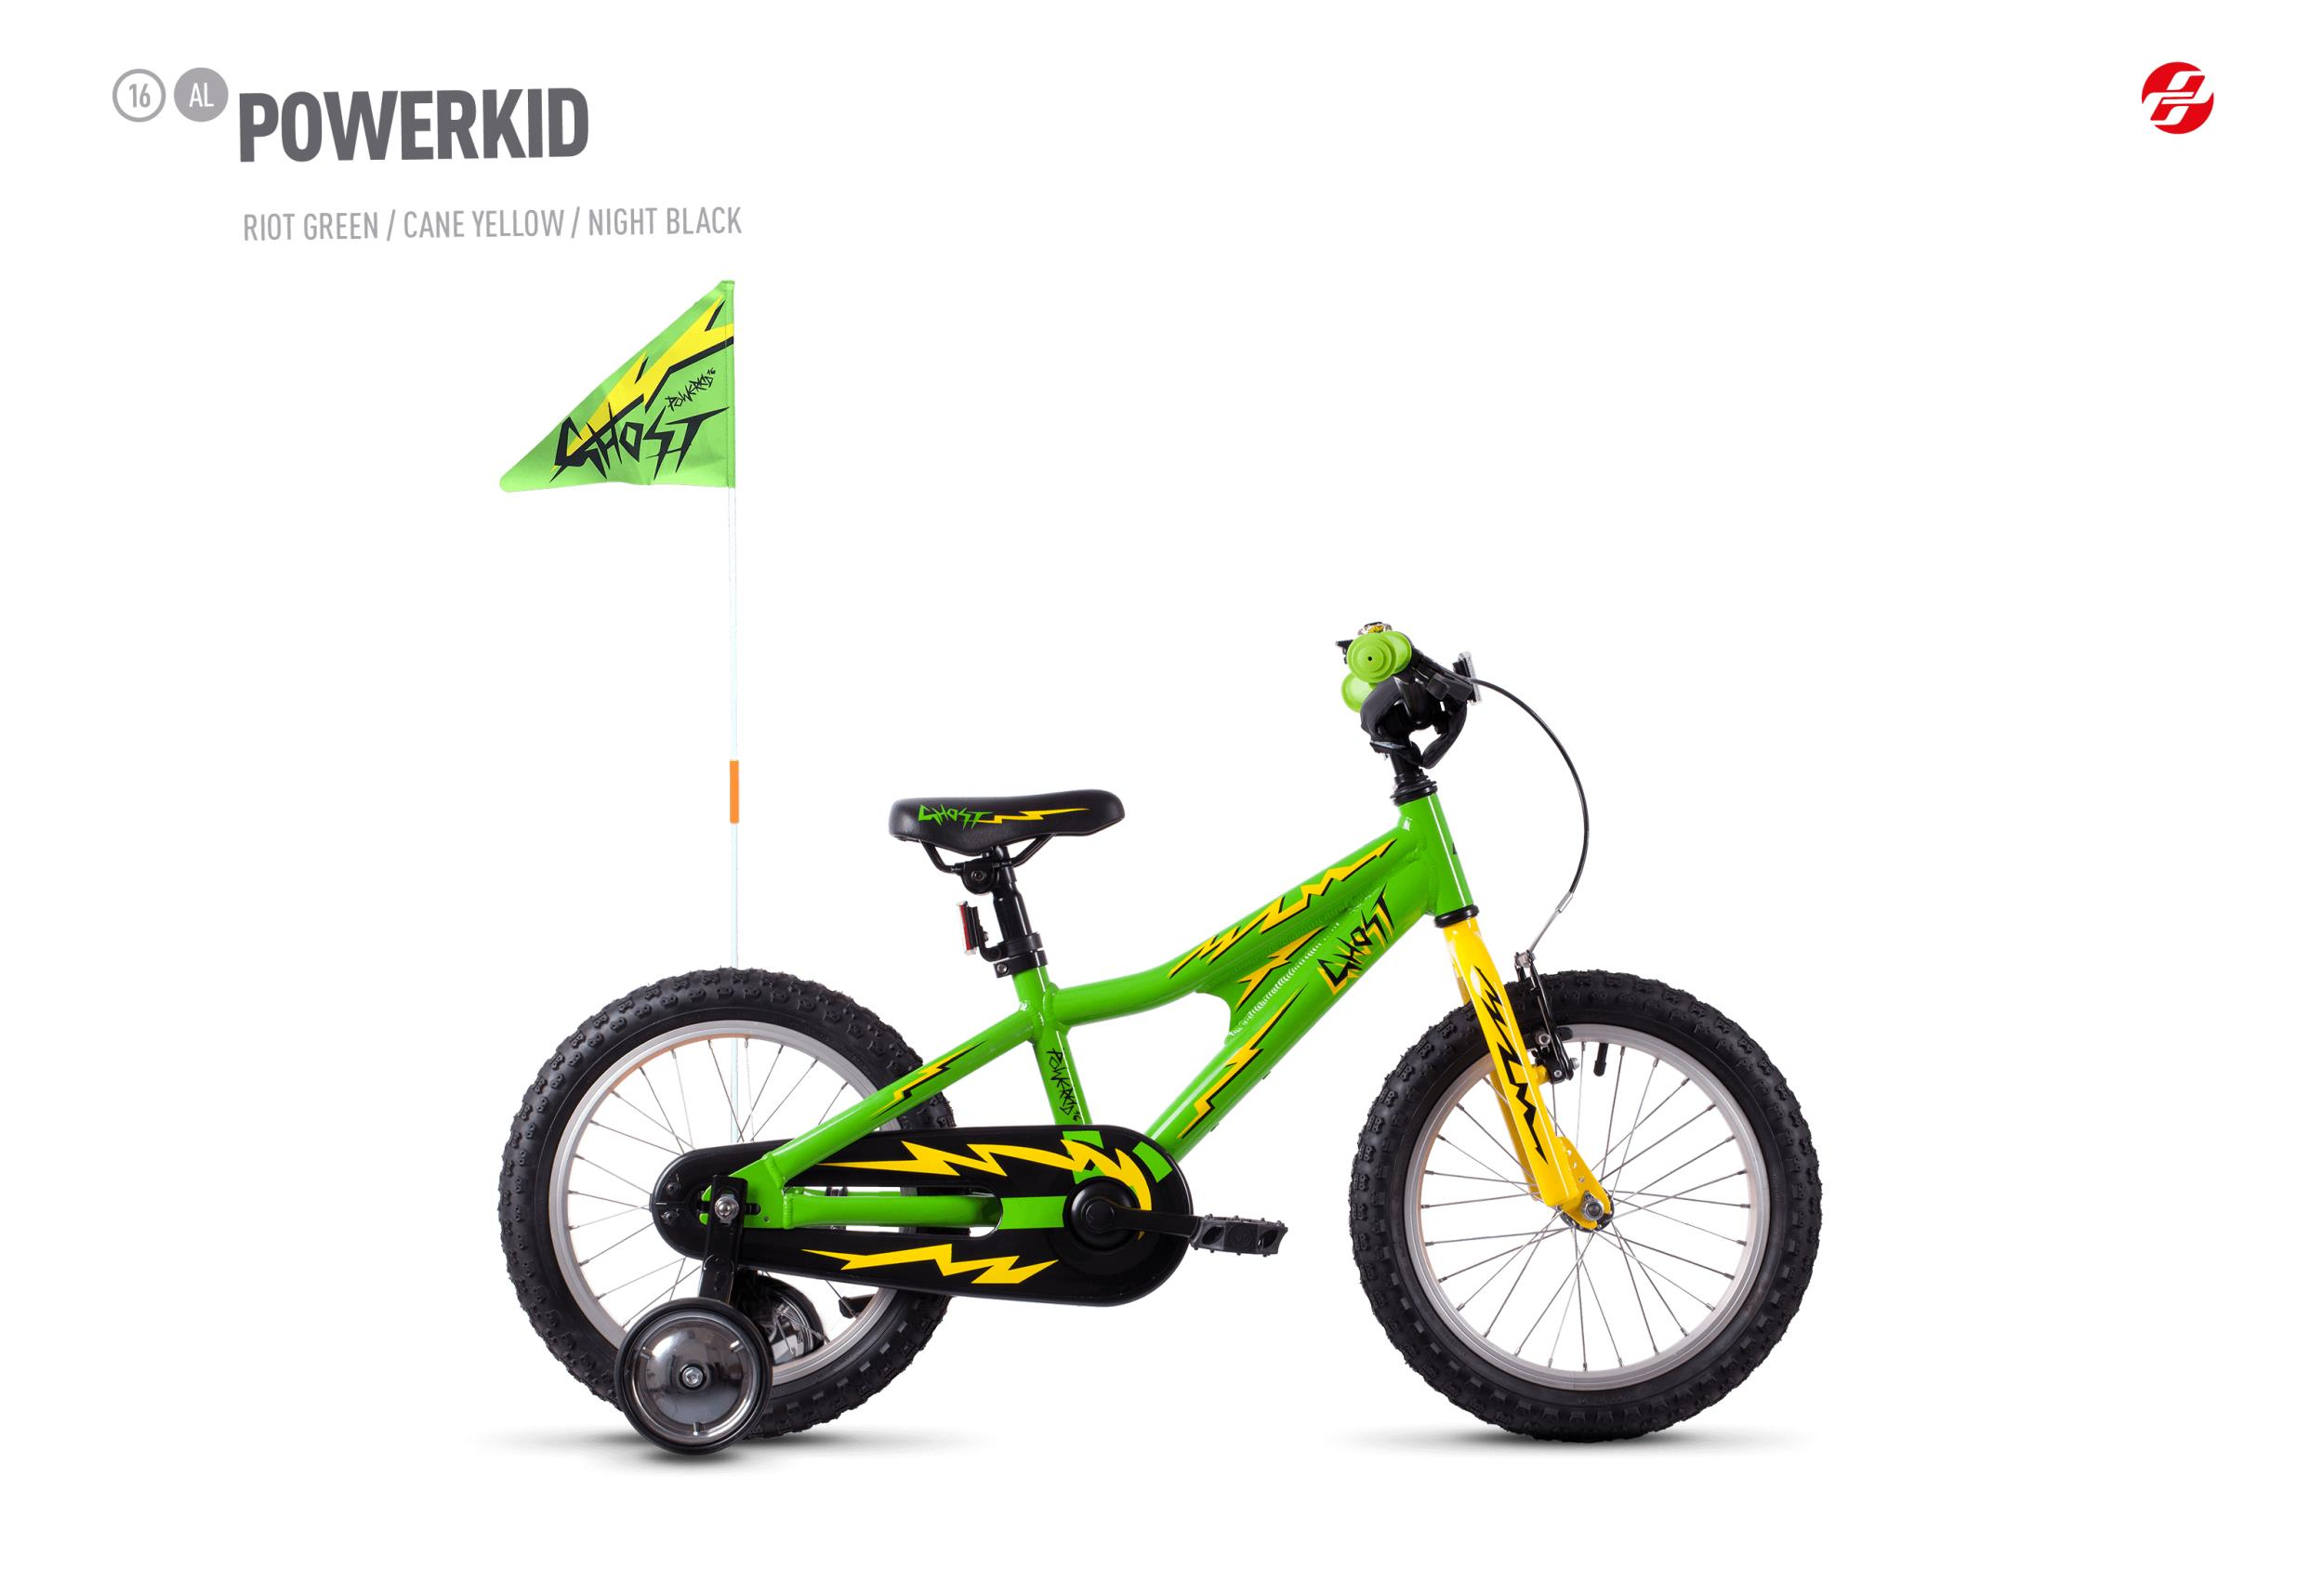 GHOST POWERKID AL 16 K riot green / cane yellow / night black 2019 - 16 -  16